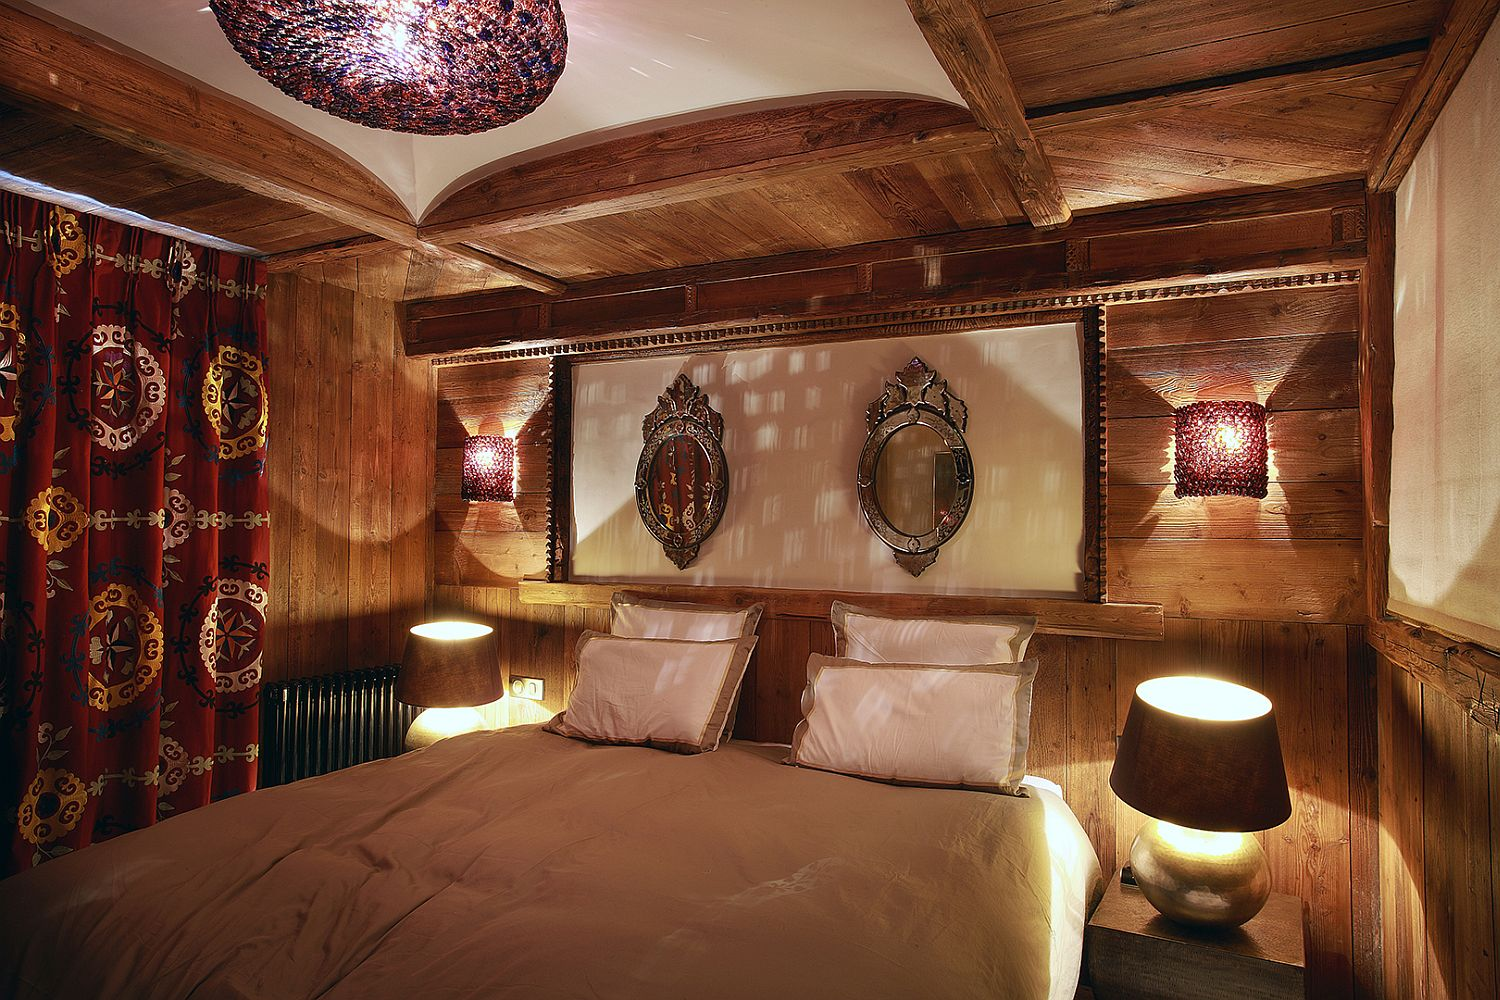 Sconce lighting along with chandelier and bedside lights in the comfy bedroom